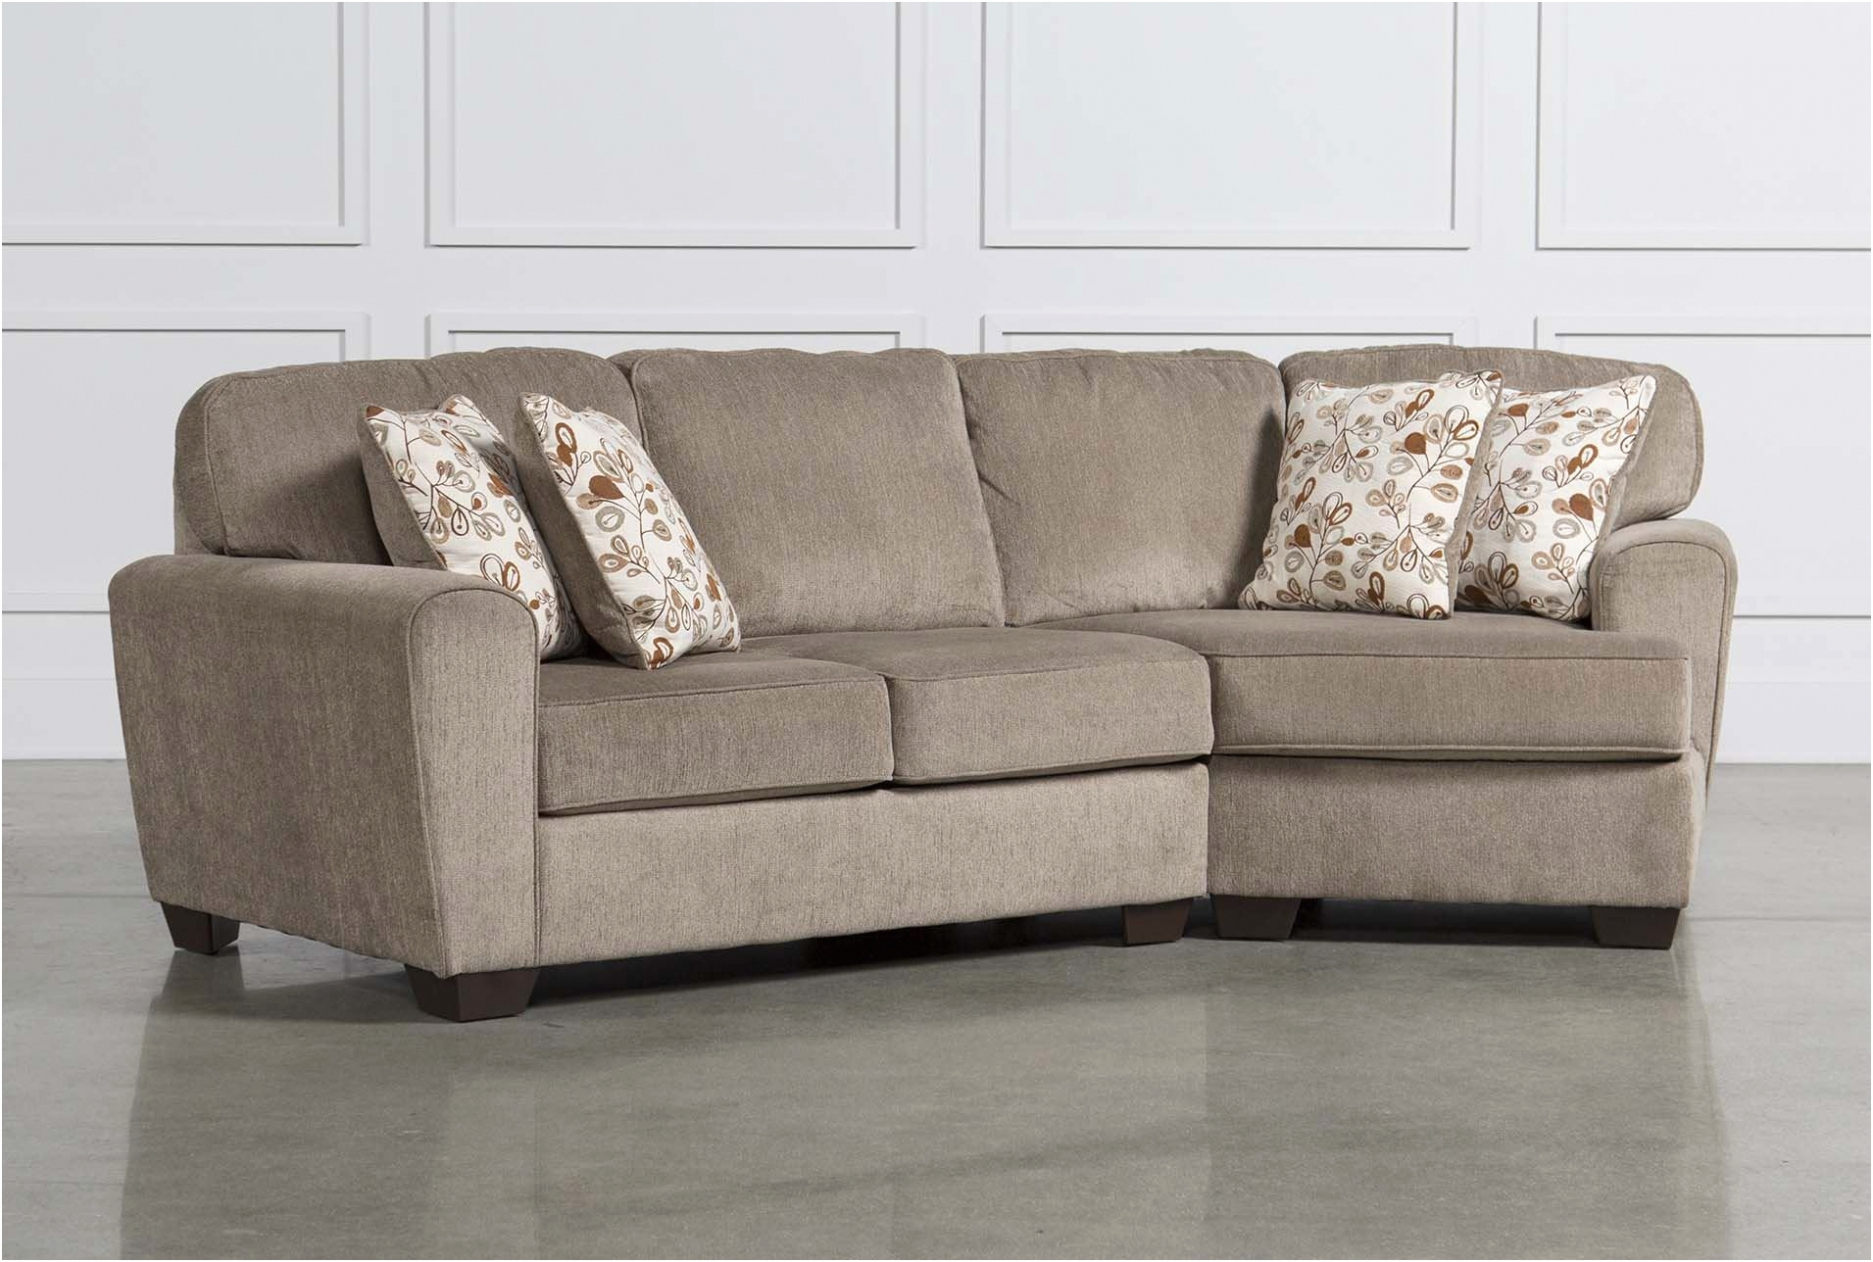 Most Recently Released Aquarius Light Grey 2 Piece Sectionals With Laf Chaise For Living Spaces Sectional Sofa Bed – Sofa Design Ideas (Gallery 13 of 20)